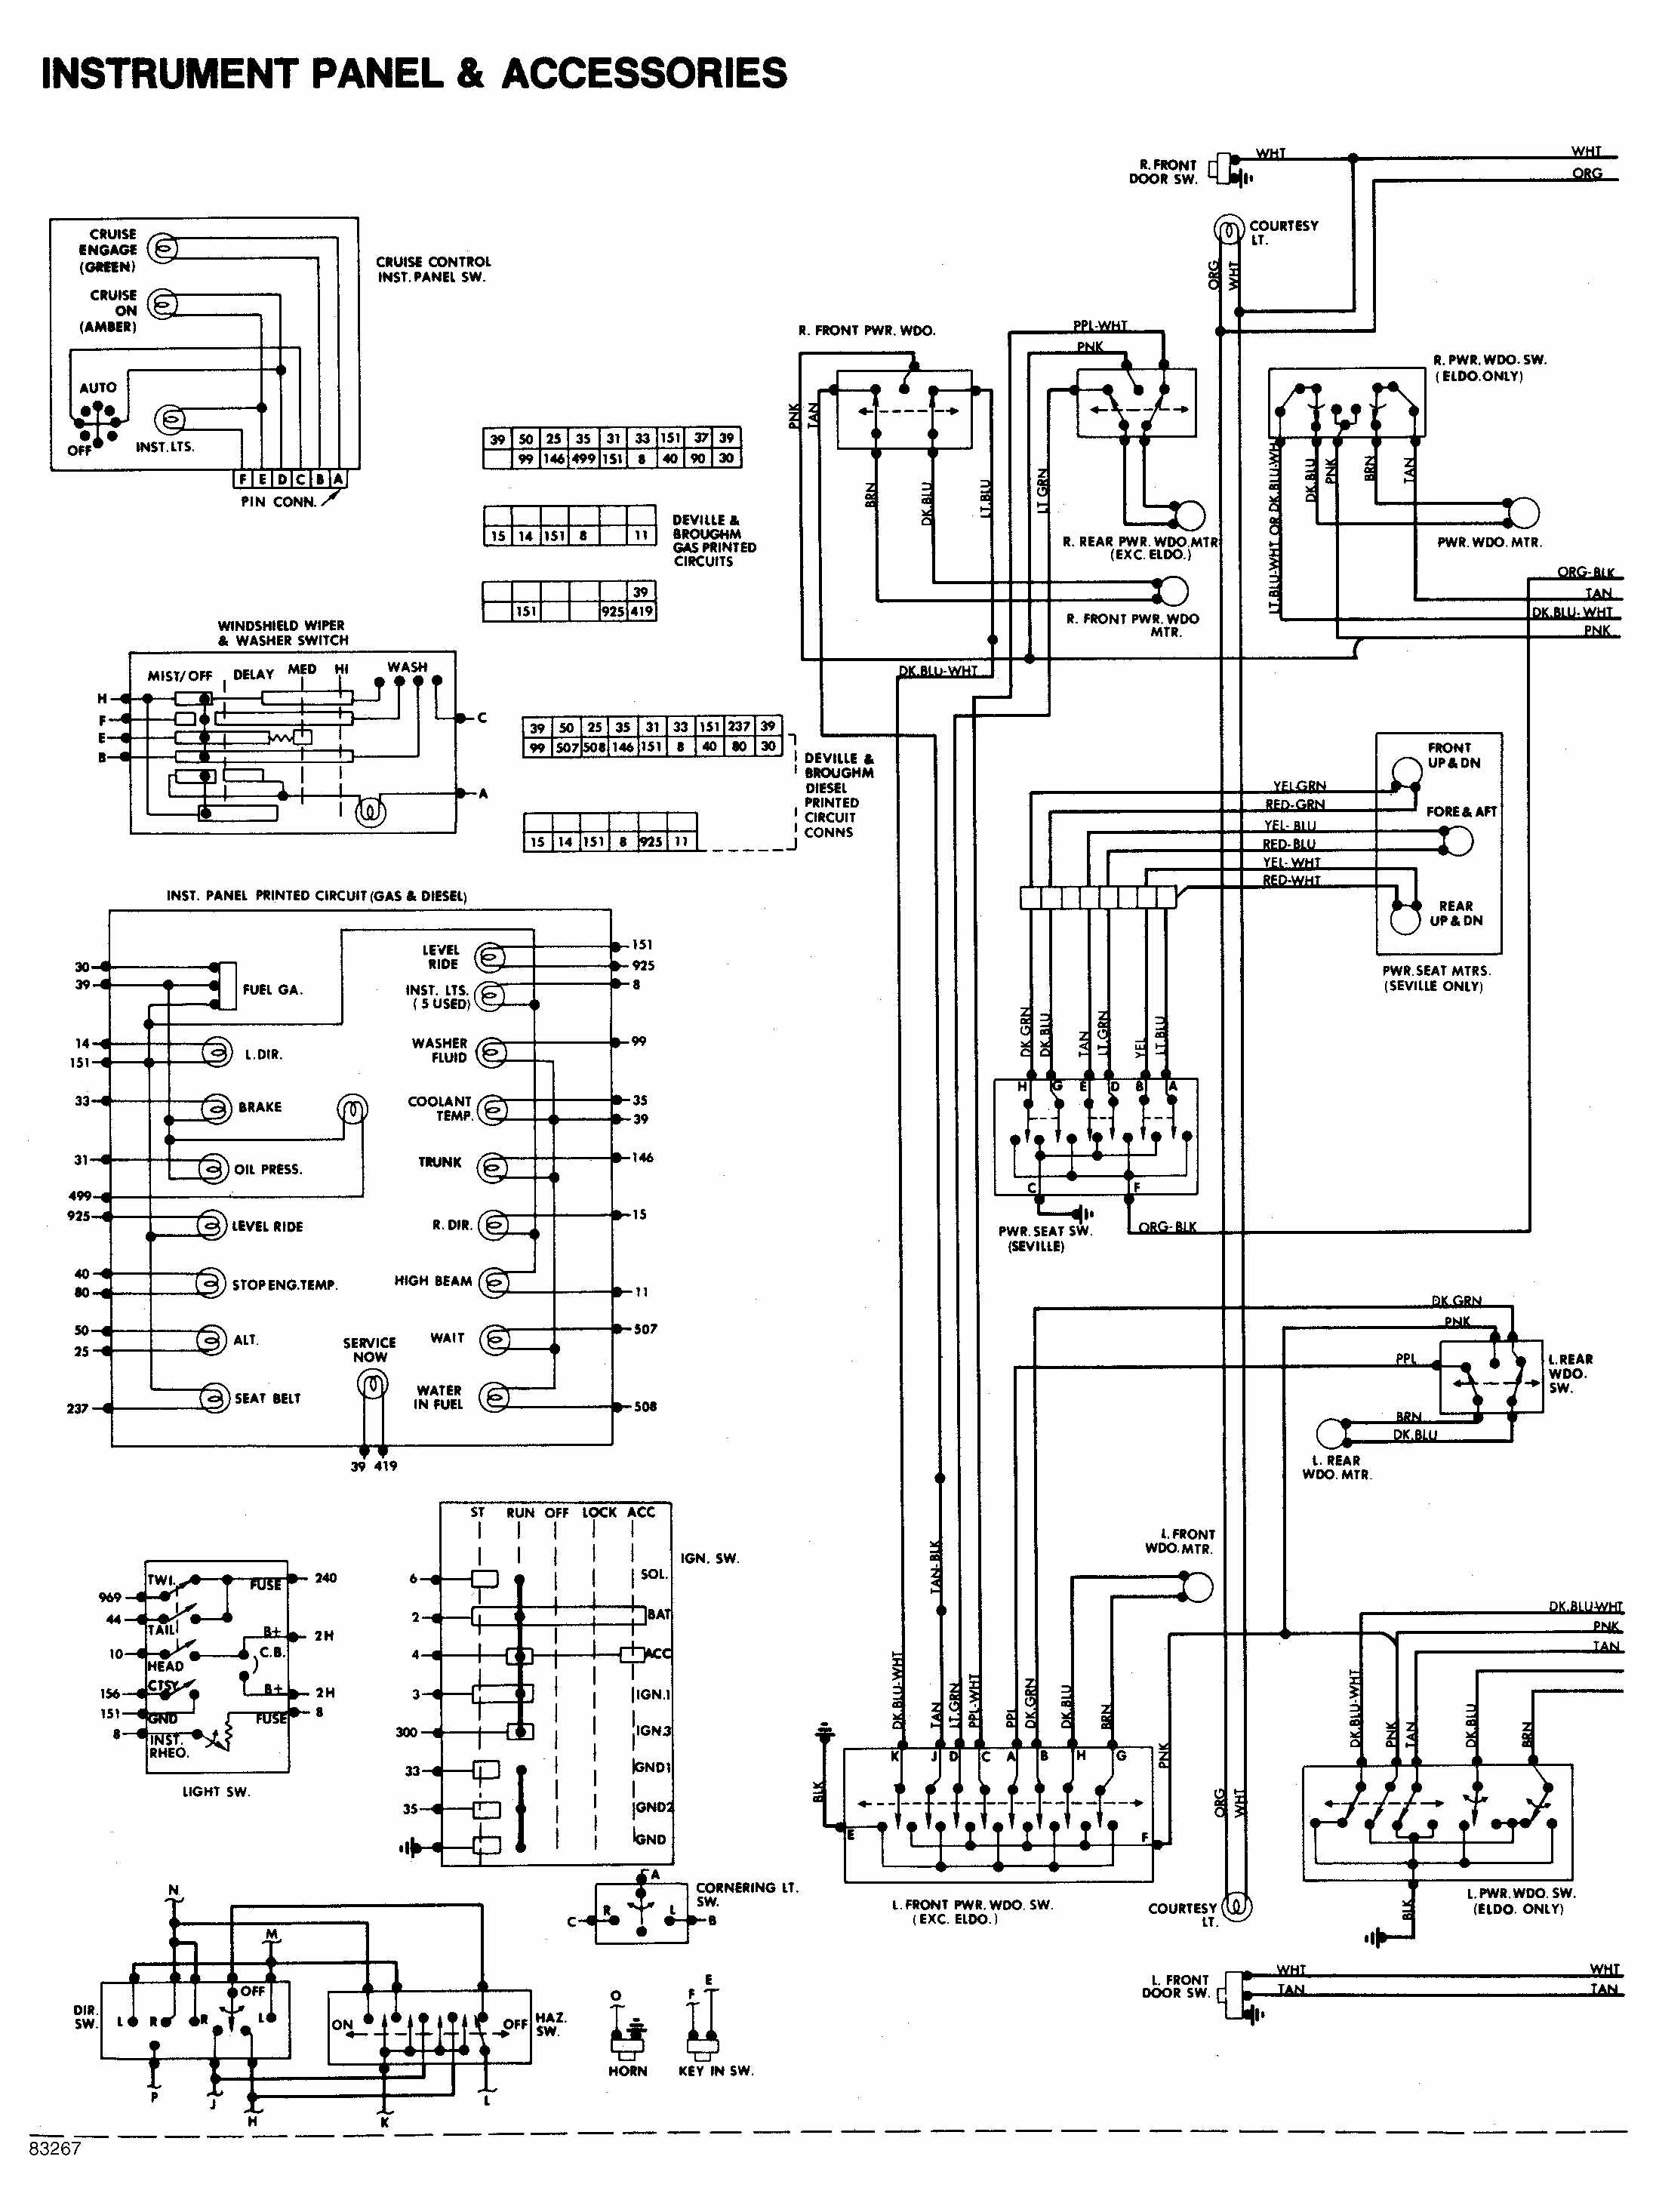 wiring diagram for 2013 silverado